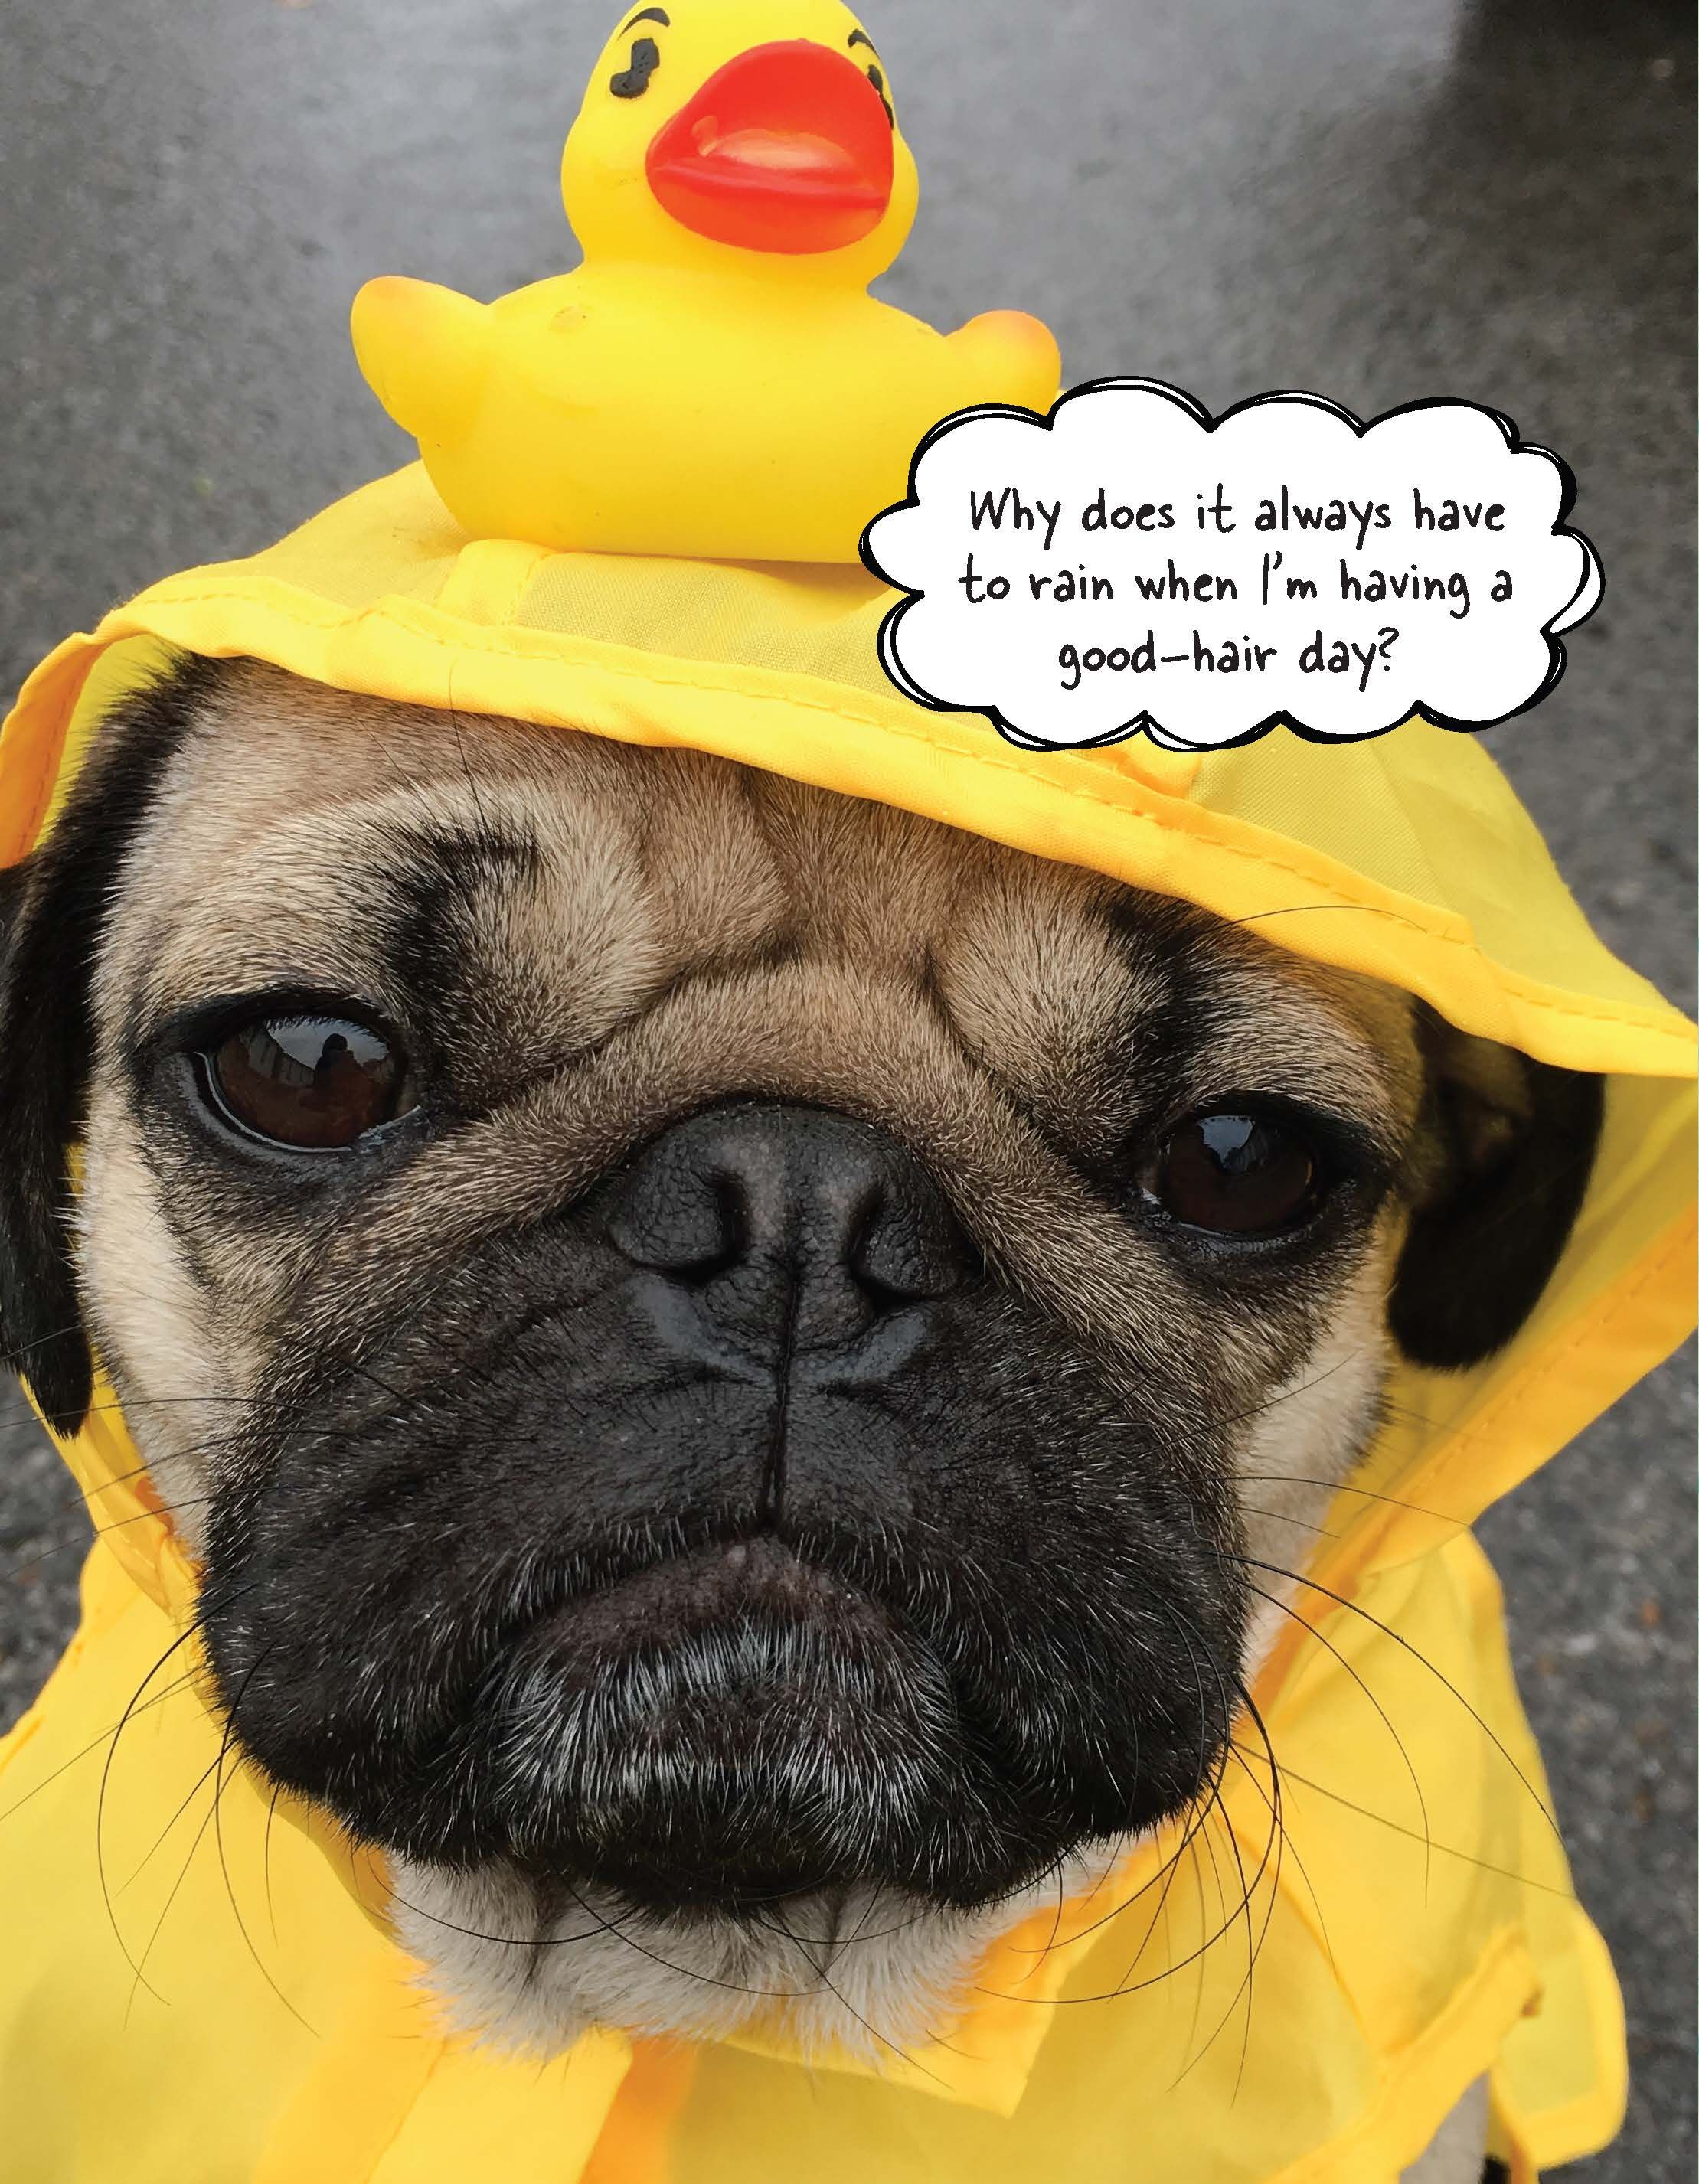 Simple Pug Army Adorable Dog - why-does-it-always-have-to-rain-1477685942  2018_100844  .jpg?crop\u003d1xw:1xh;center,top\u0026resize\u003d480:*